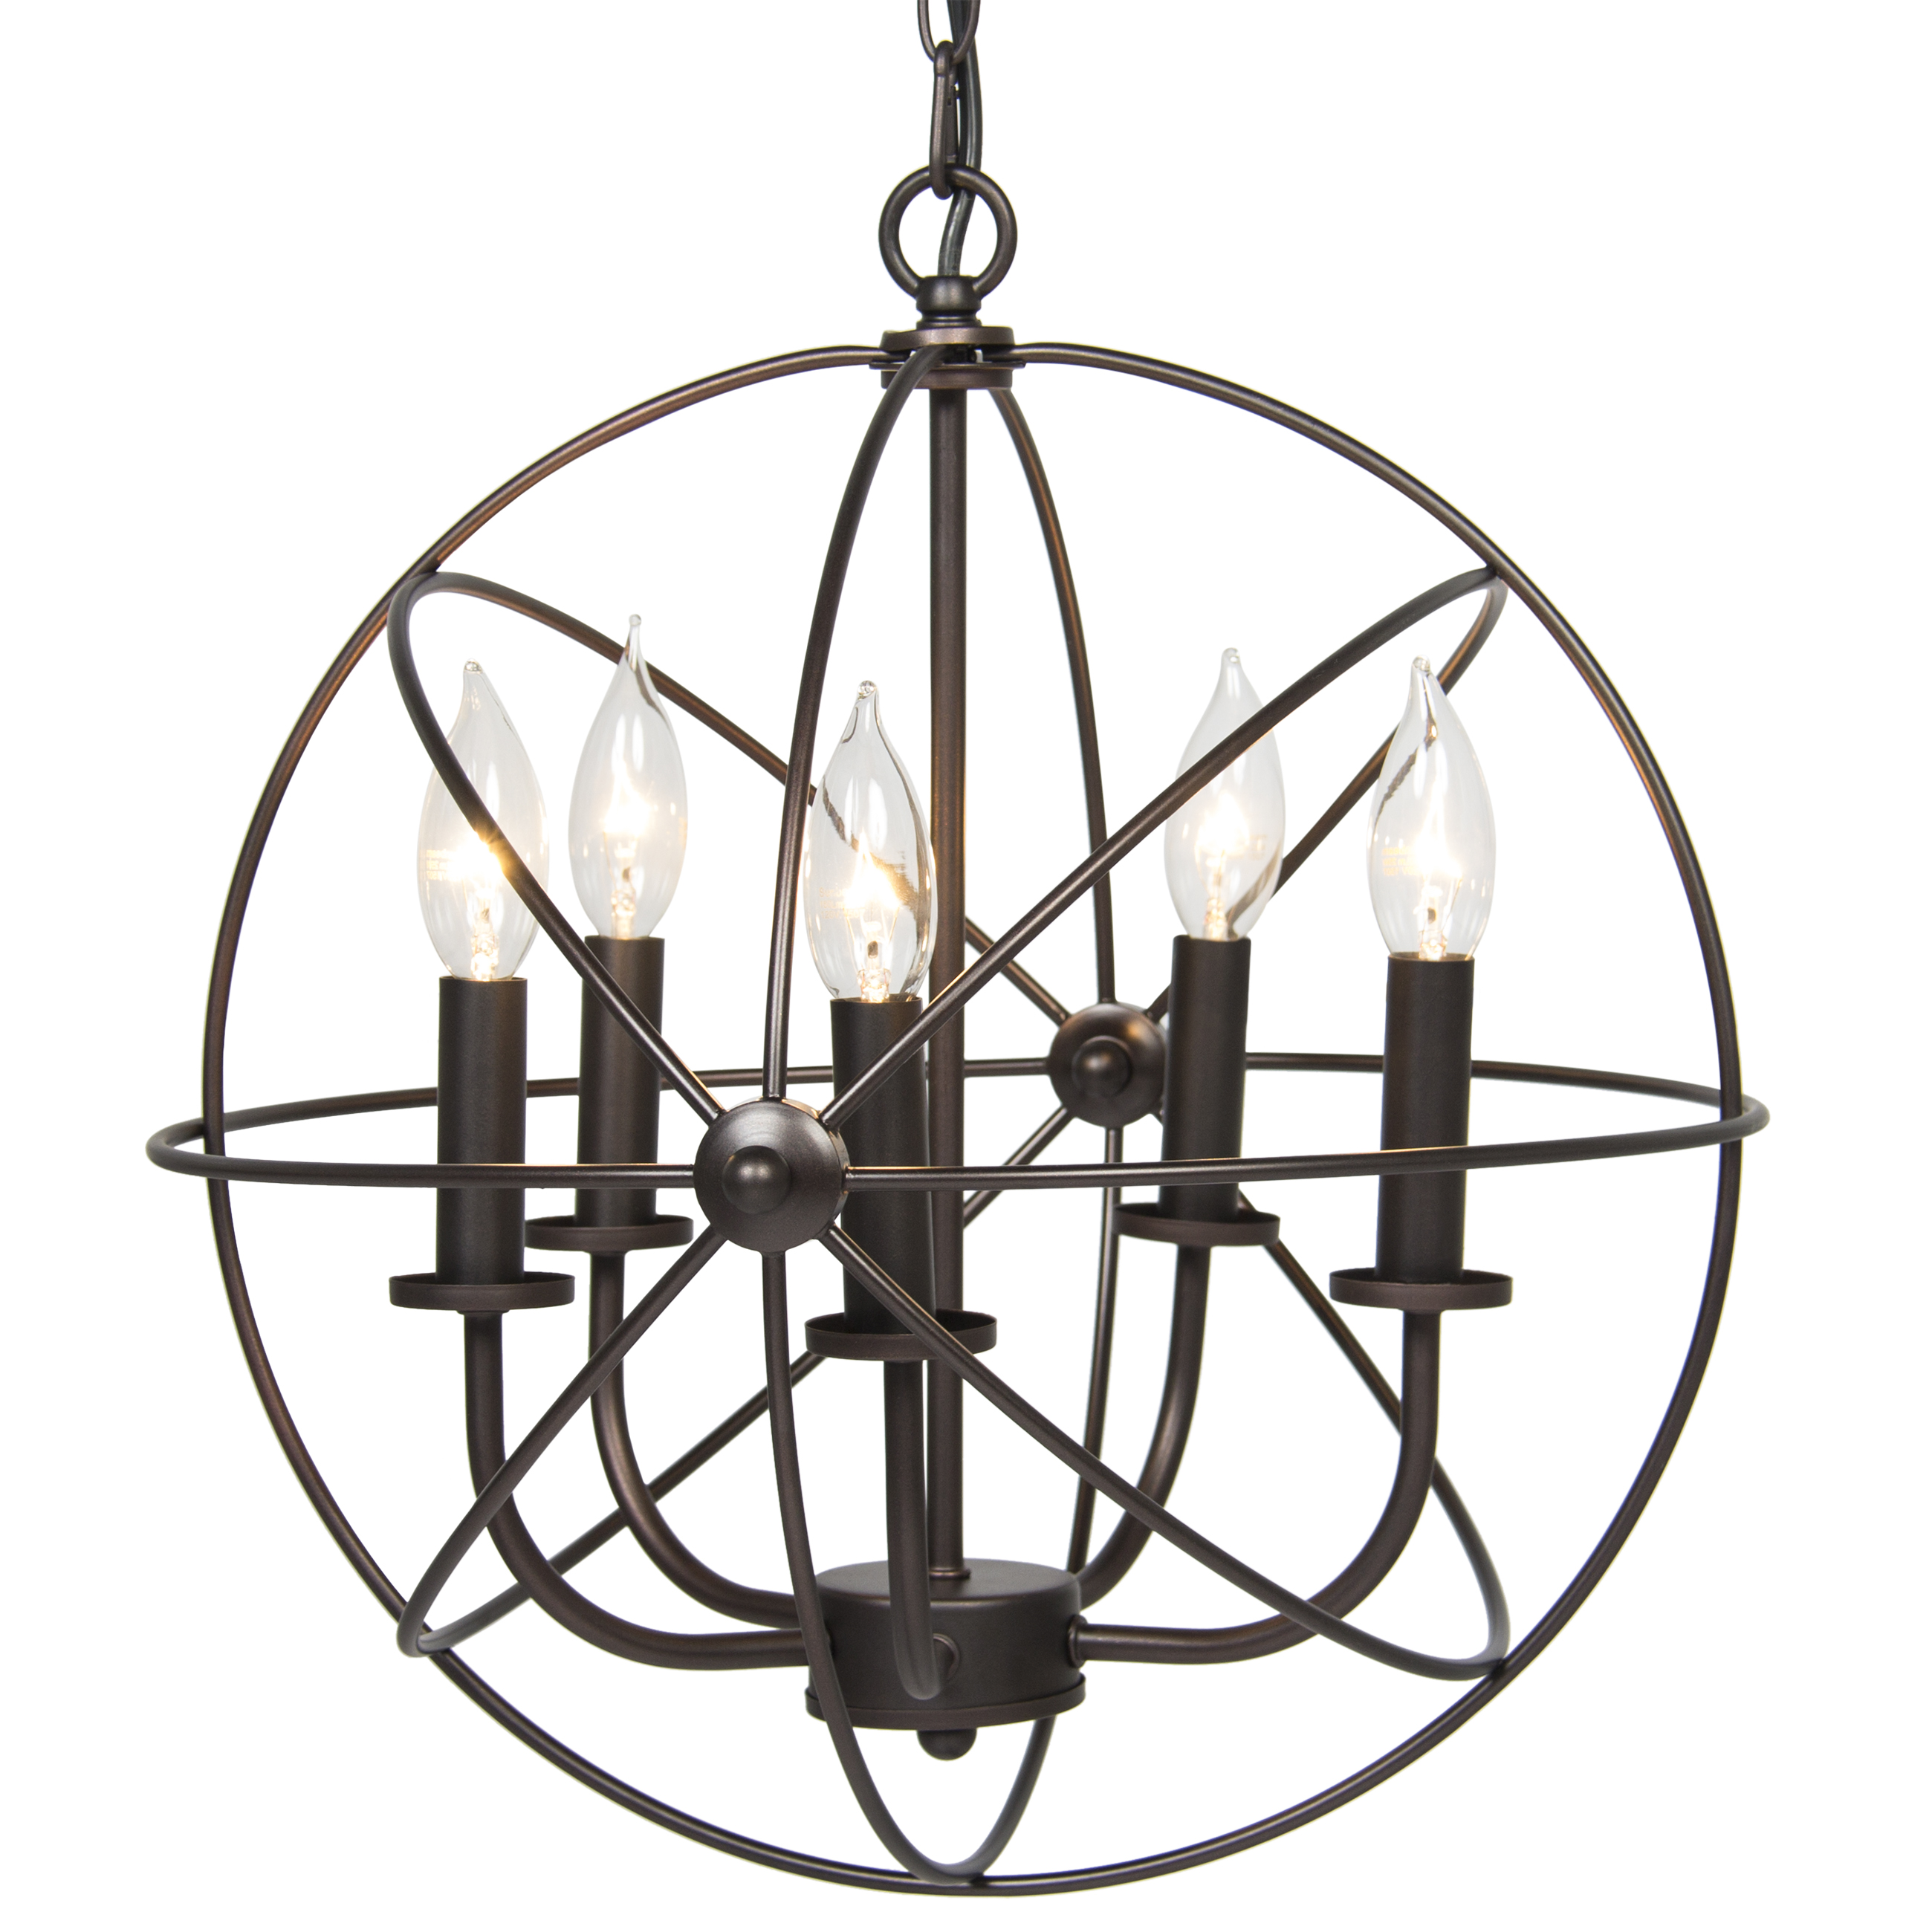 Best Choice Products Industrial Vintage Lighting Ceiling Chandelier 5 Lights Metal Hanging Fixture by SKY